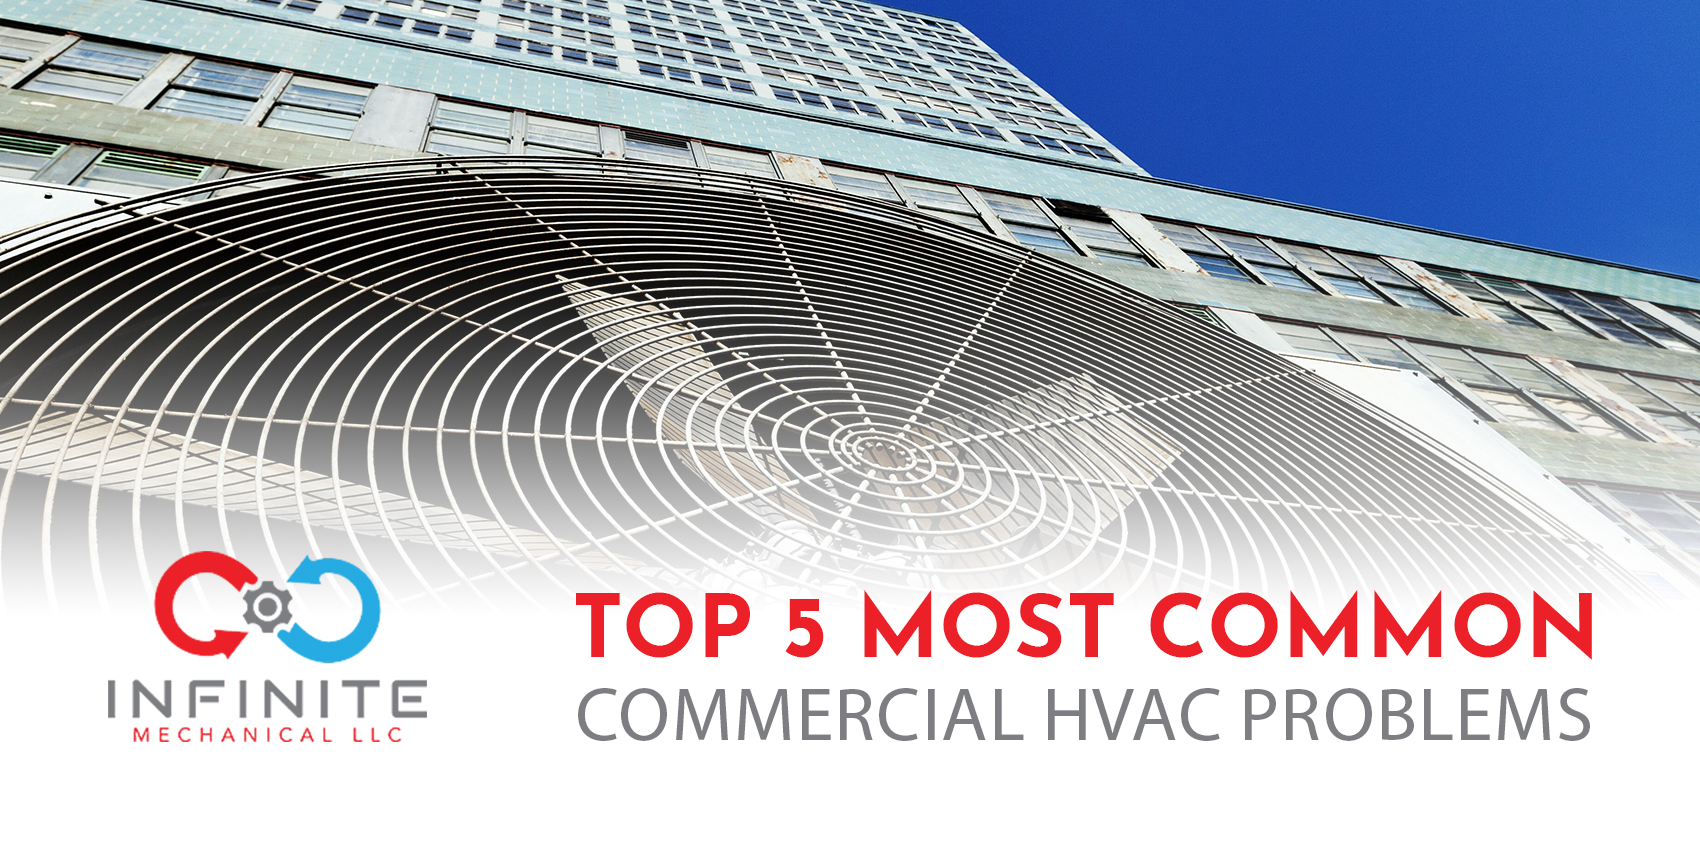 Top 5 Most Common Commercial HVAC Problems